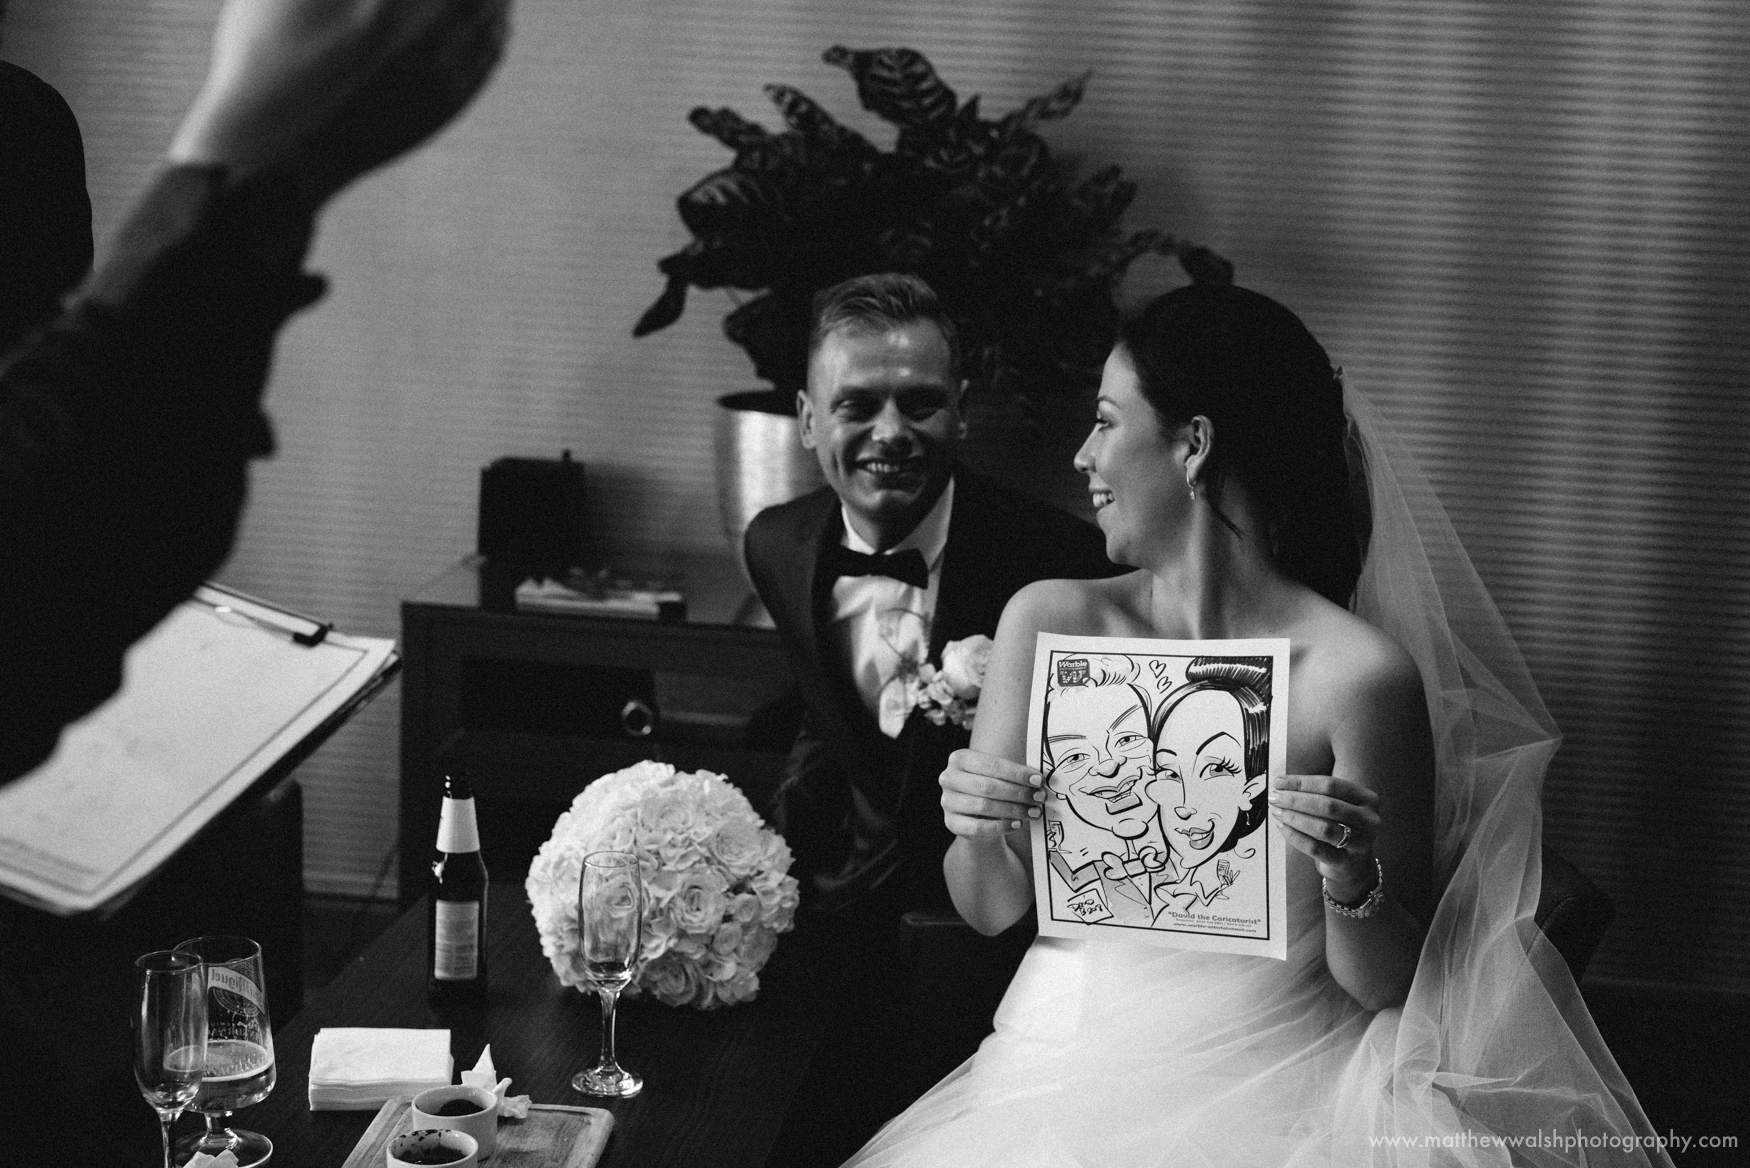 The bride and groom have their caricature done by the artist